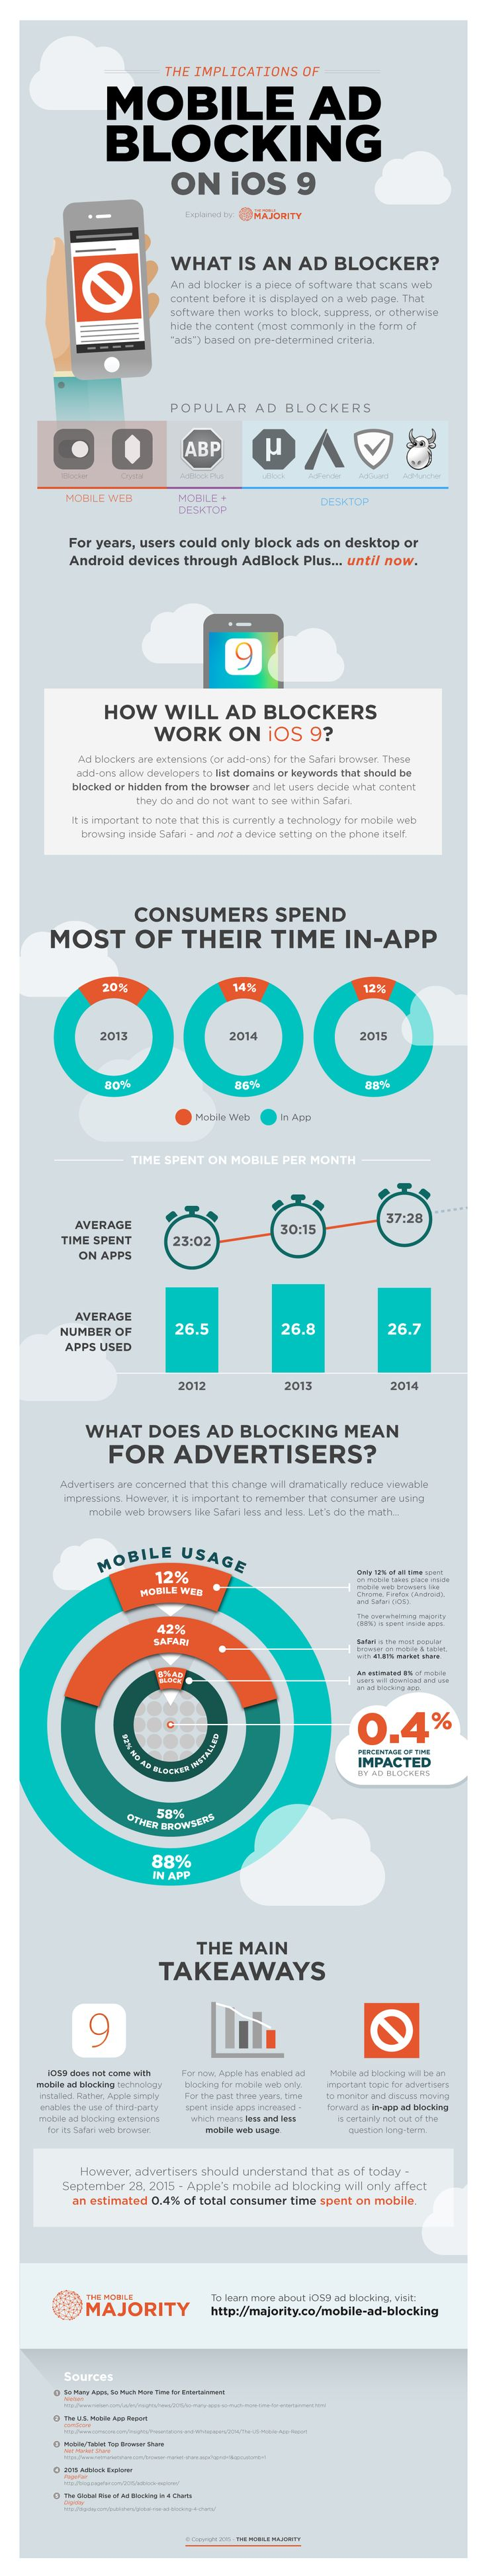 Why iOS9 Ad Blockers Will Only Impact 0.4% of Users | Digital Marketing Magazine